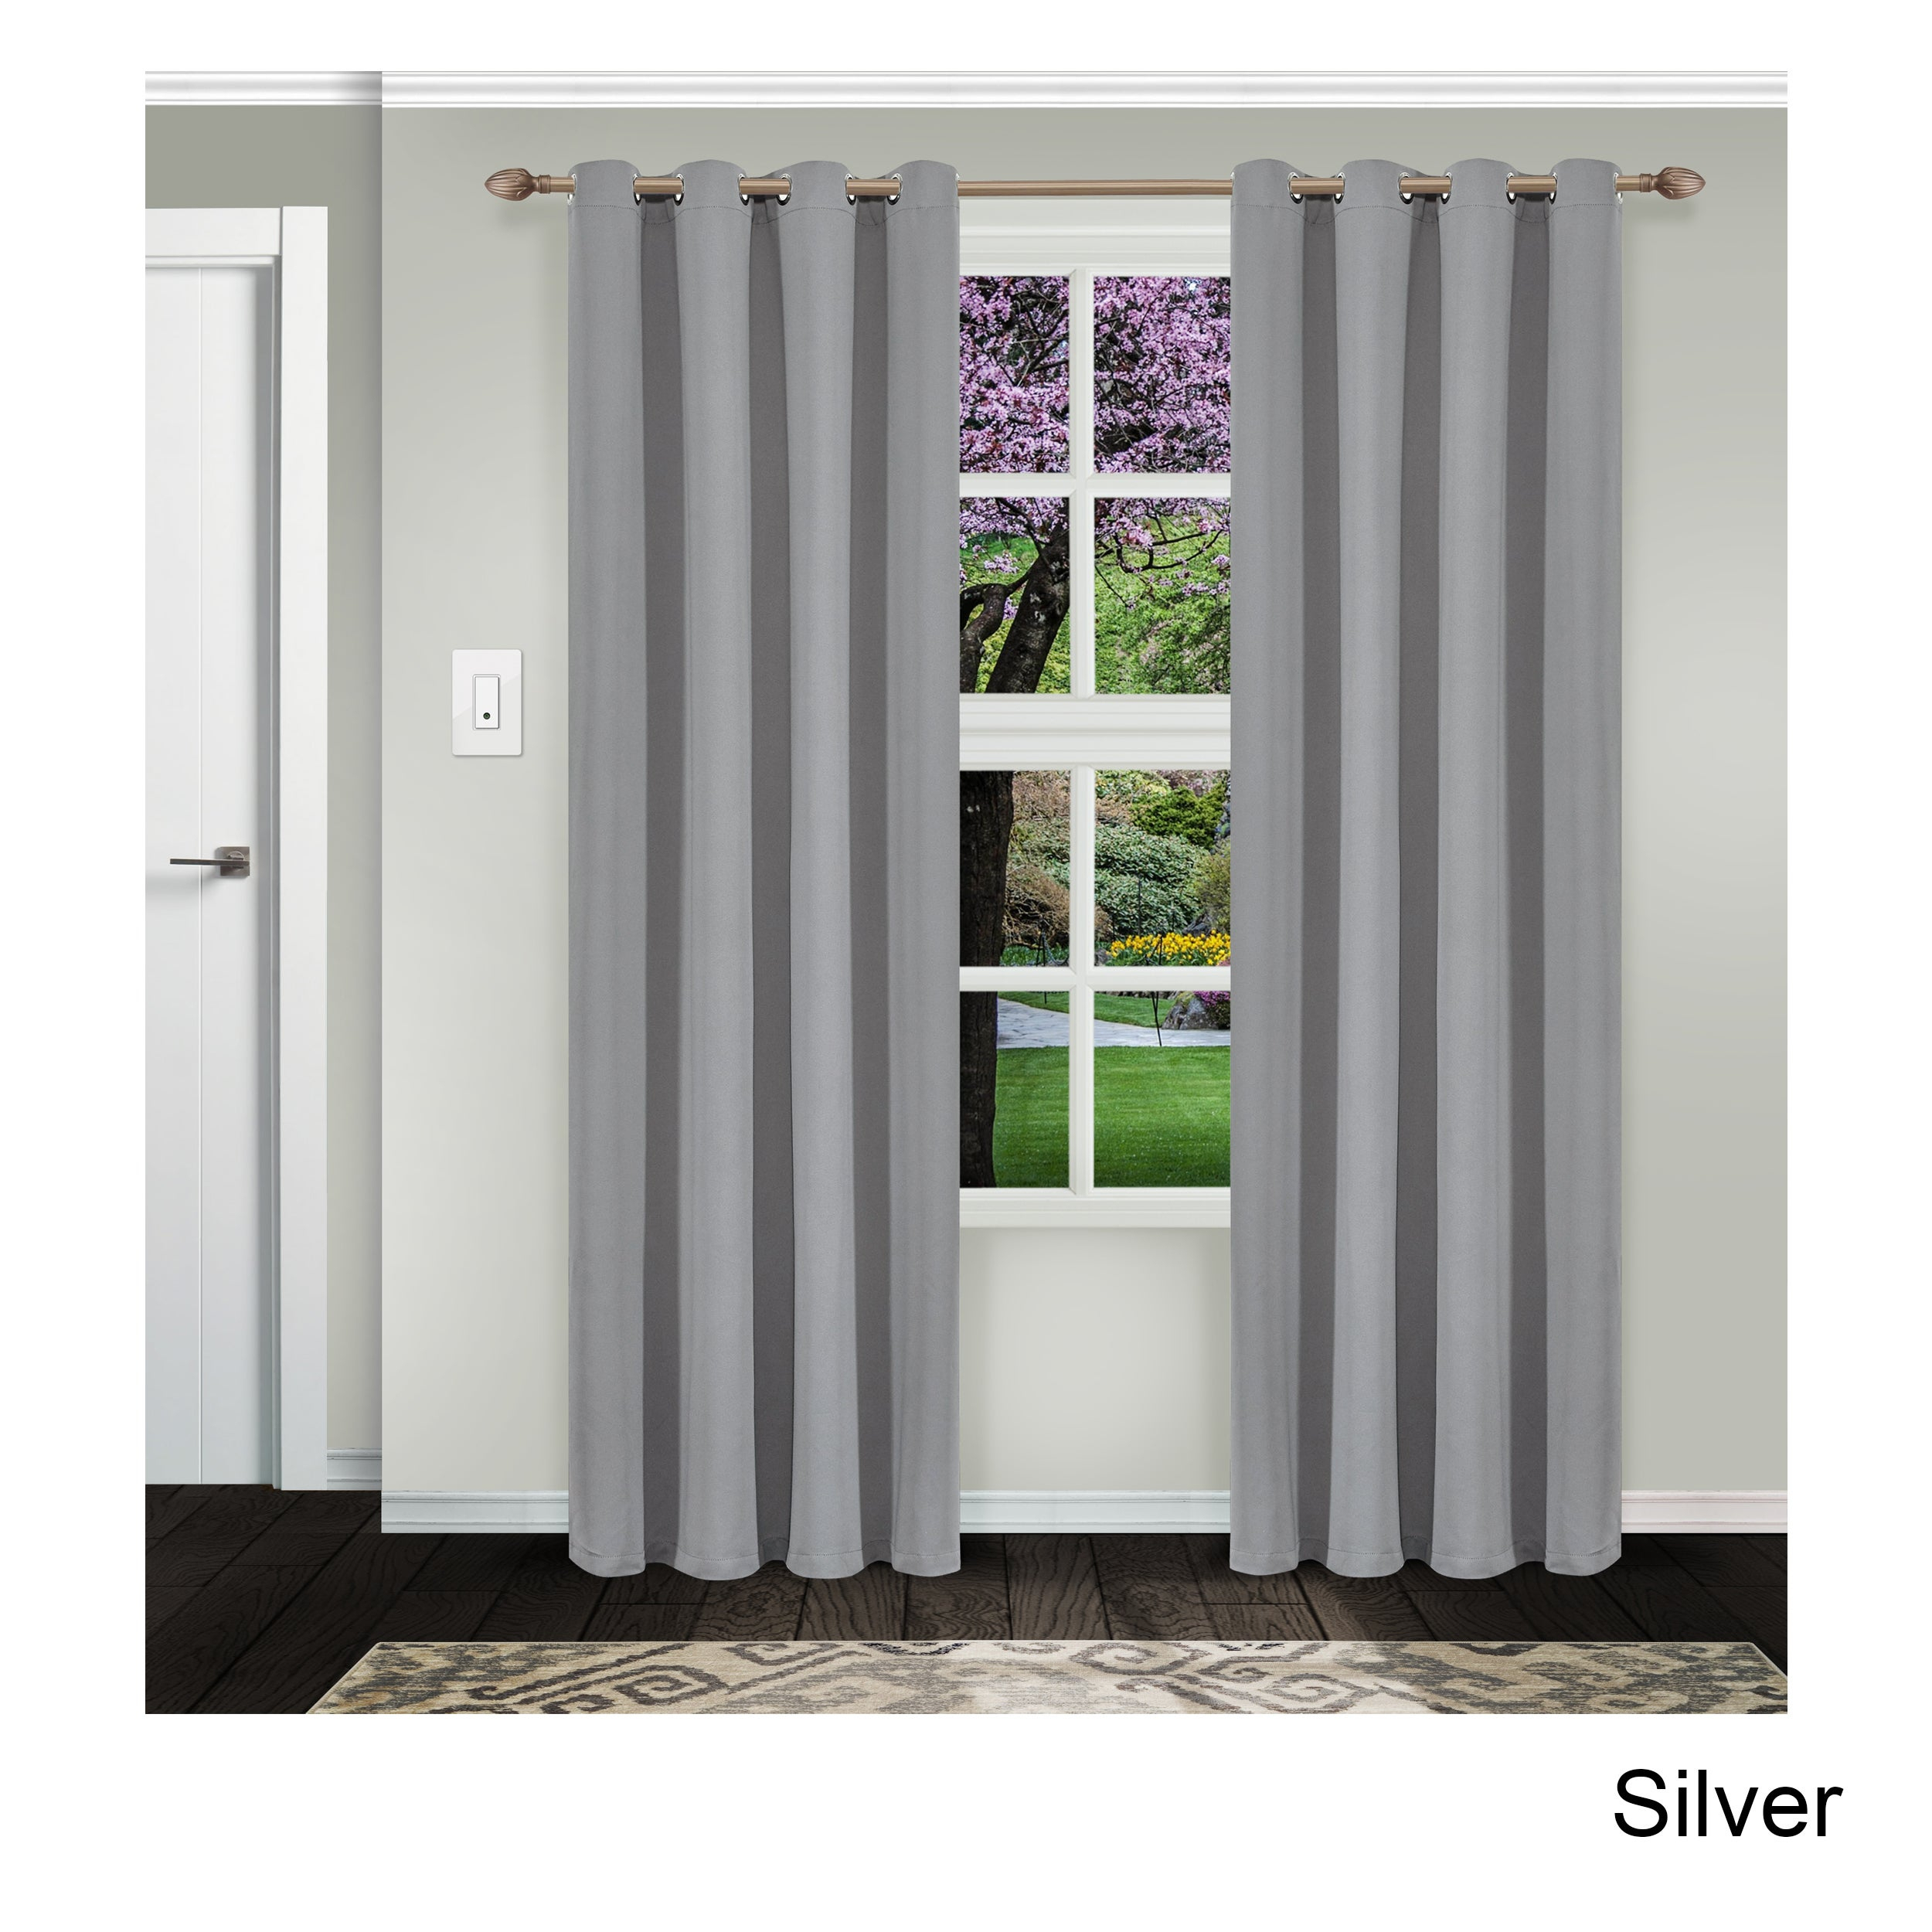 Superior Solid Insulated Thermal Blackout Grommet Curtain Panel Pair Within Superior Solid Insulated Thermal Blackout Grommet Curtain Panel Pairs (View 3 of 30)